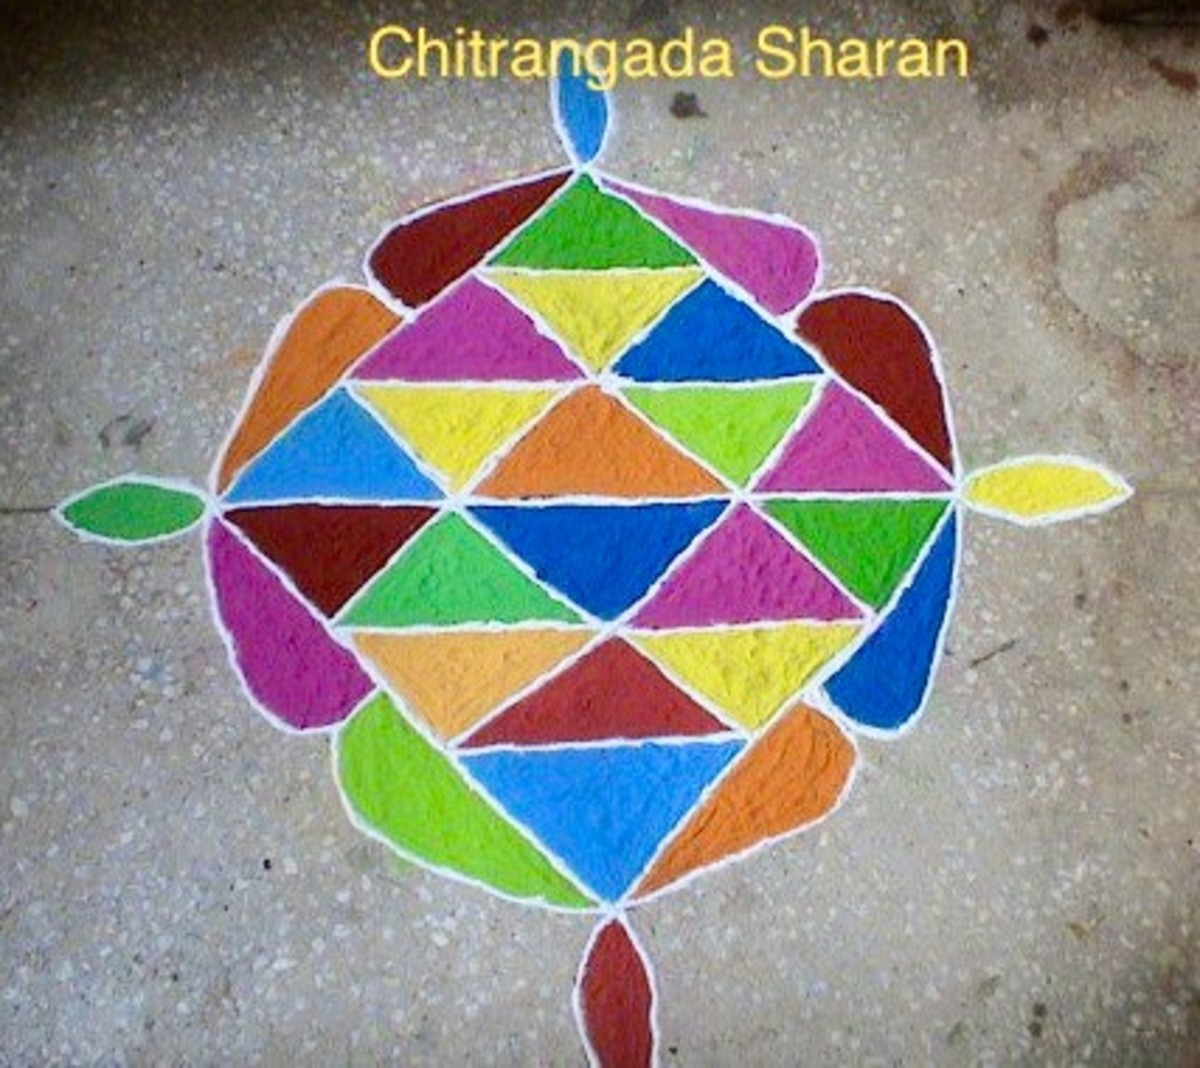 Rangoli made with coloured sand